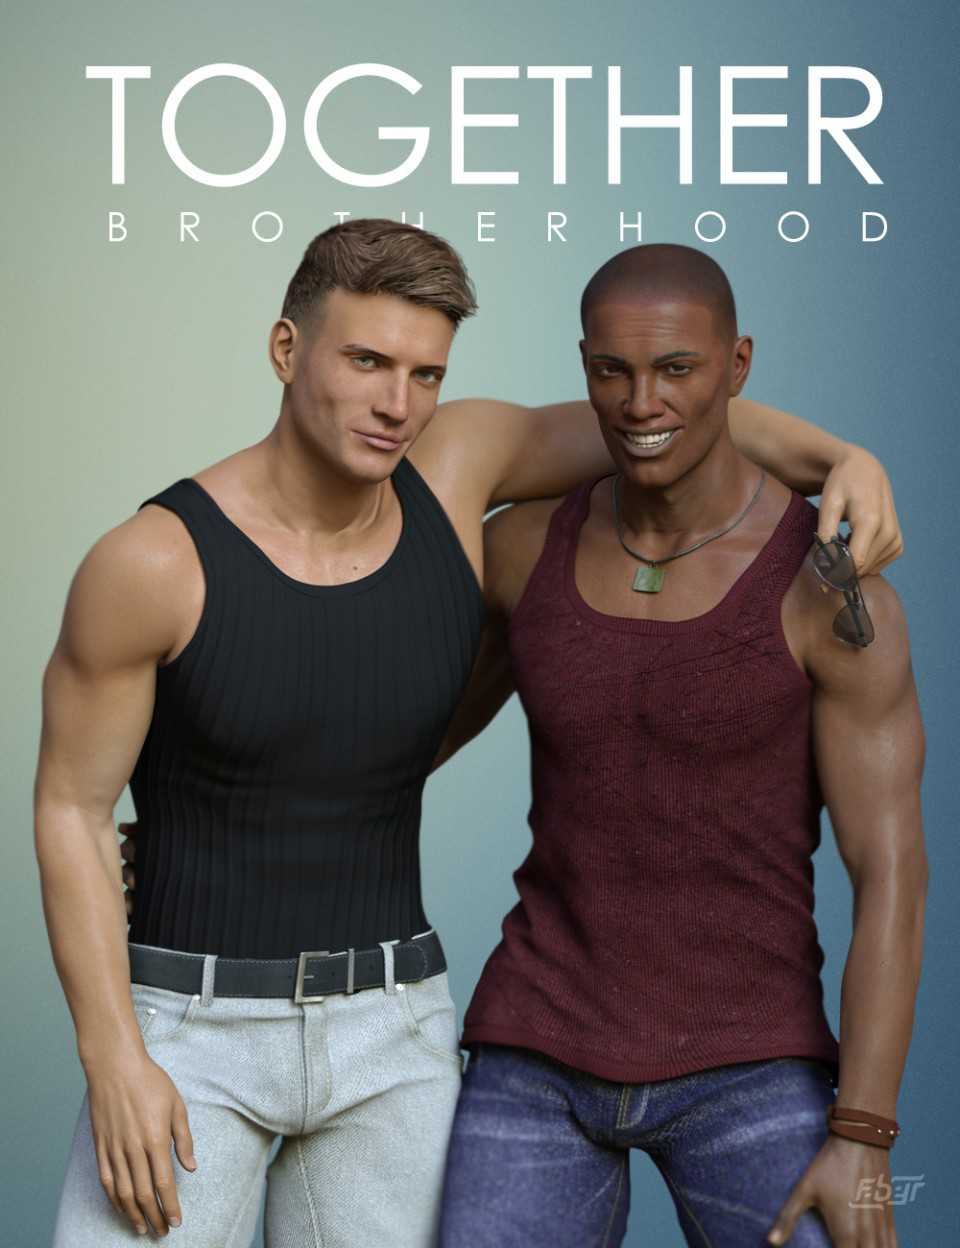 Together: Brotherhood Poses for Genesis 8 Male(s)